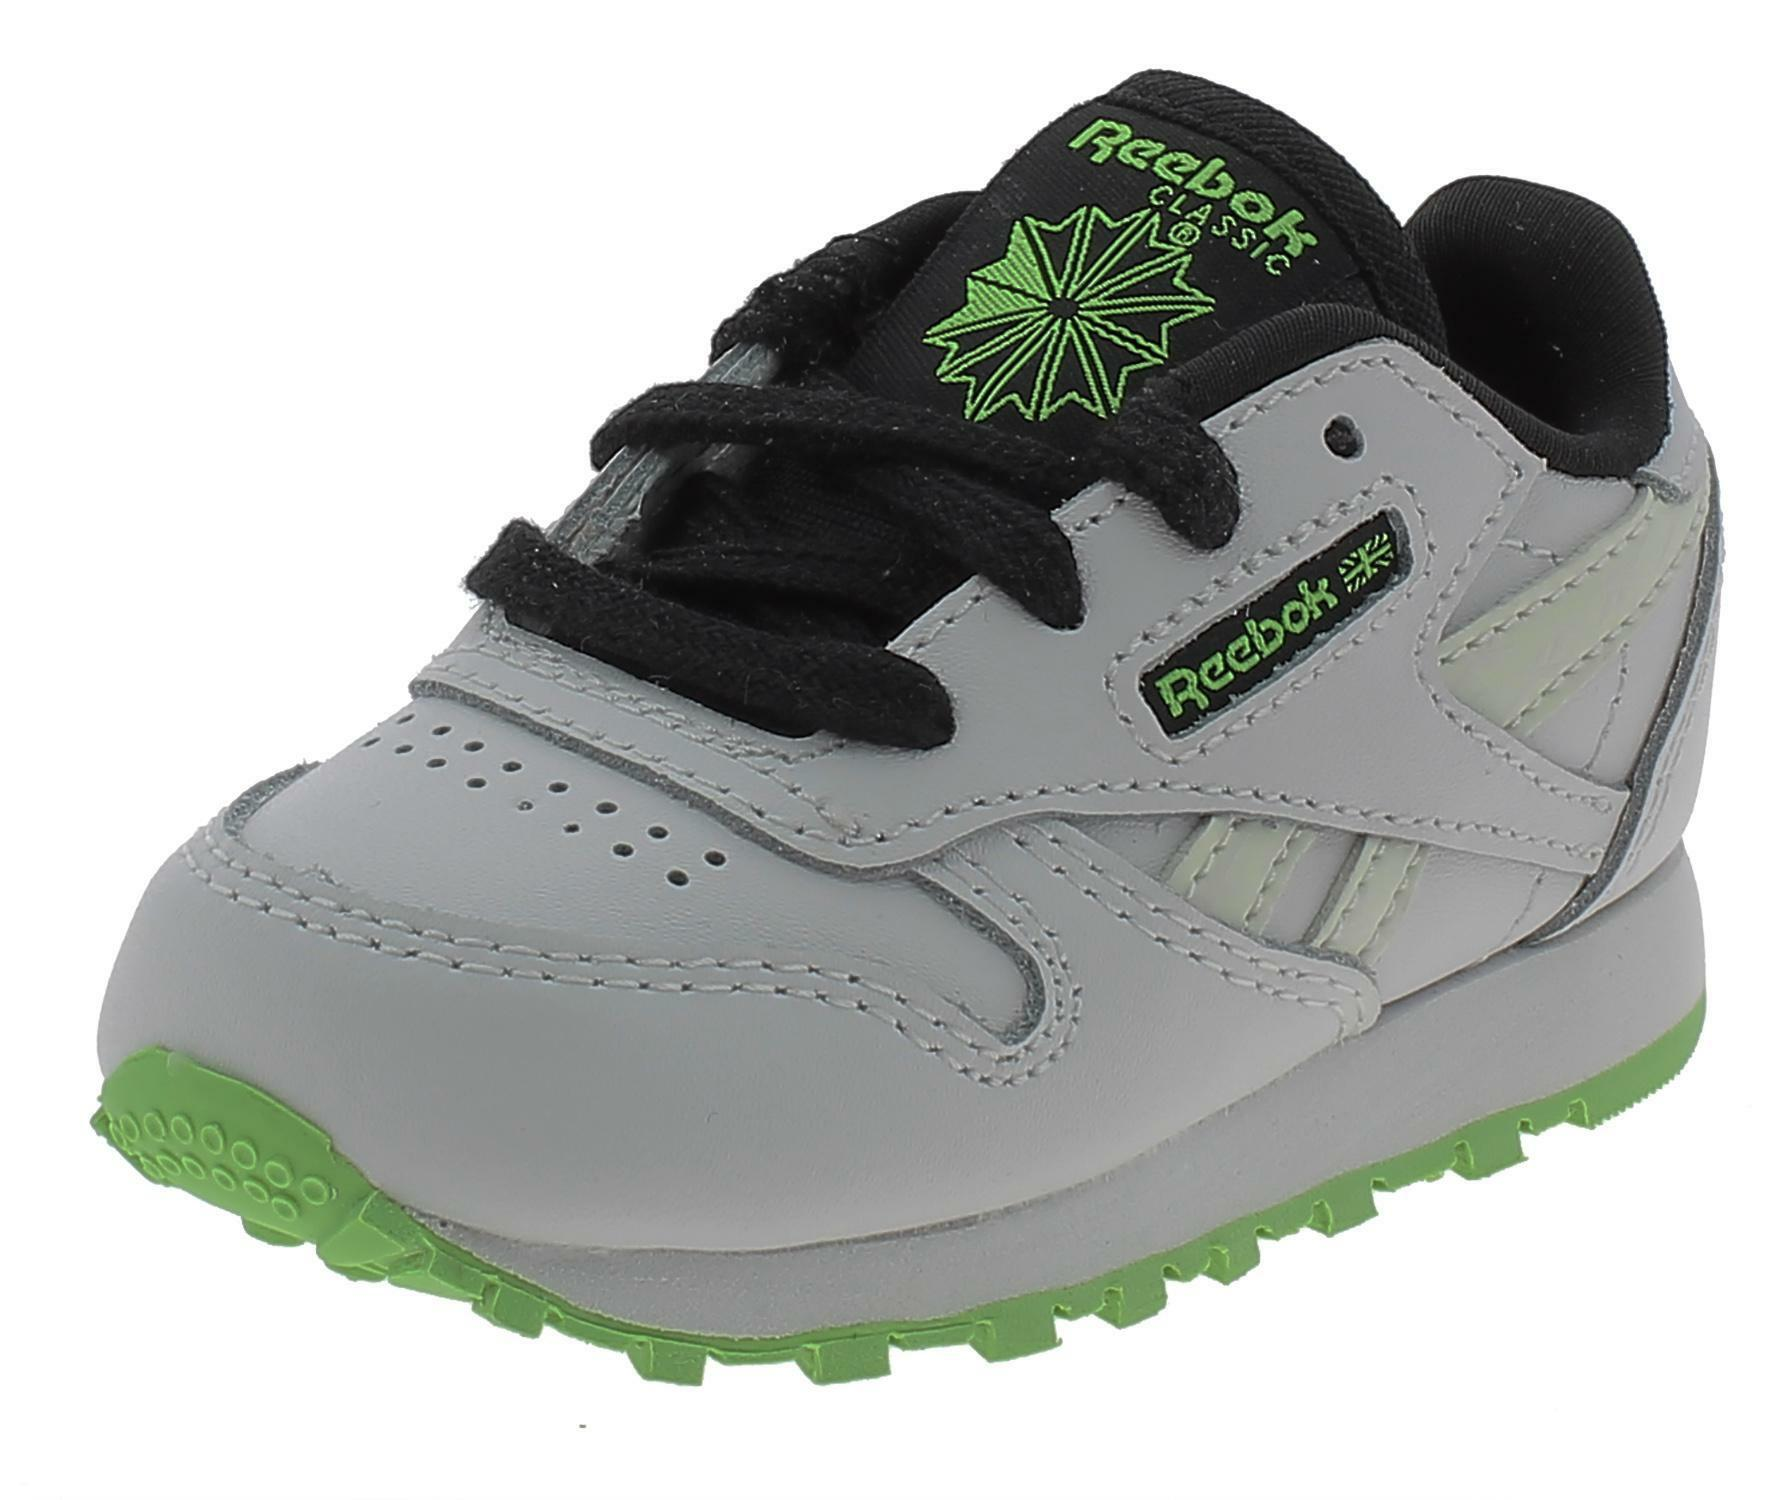 Reebok classic leather scarpe sportive bambino bianche eh3234